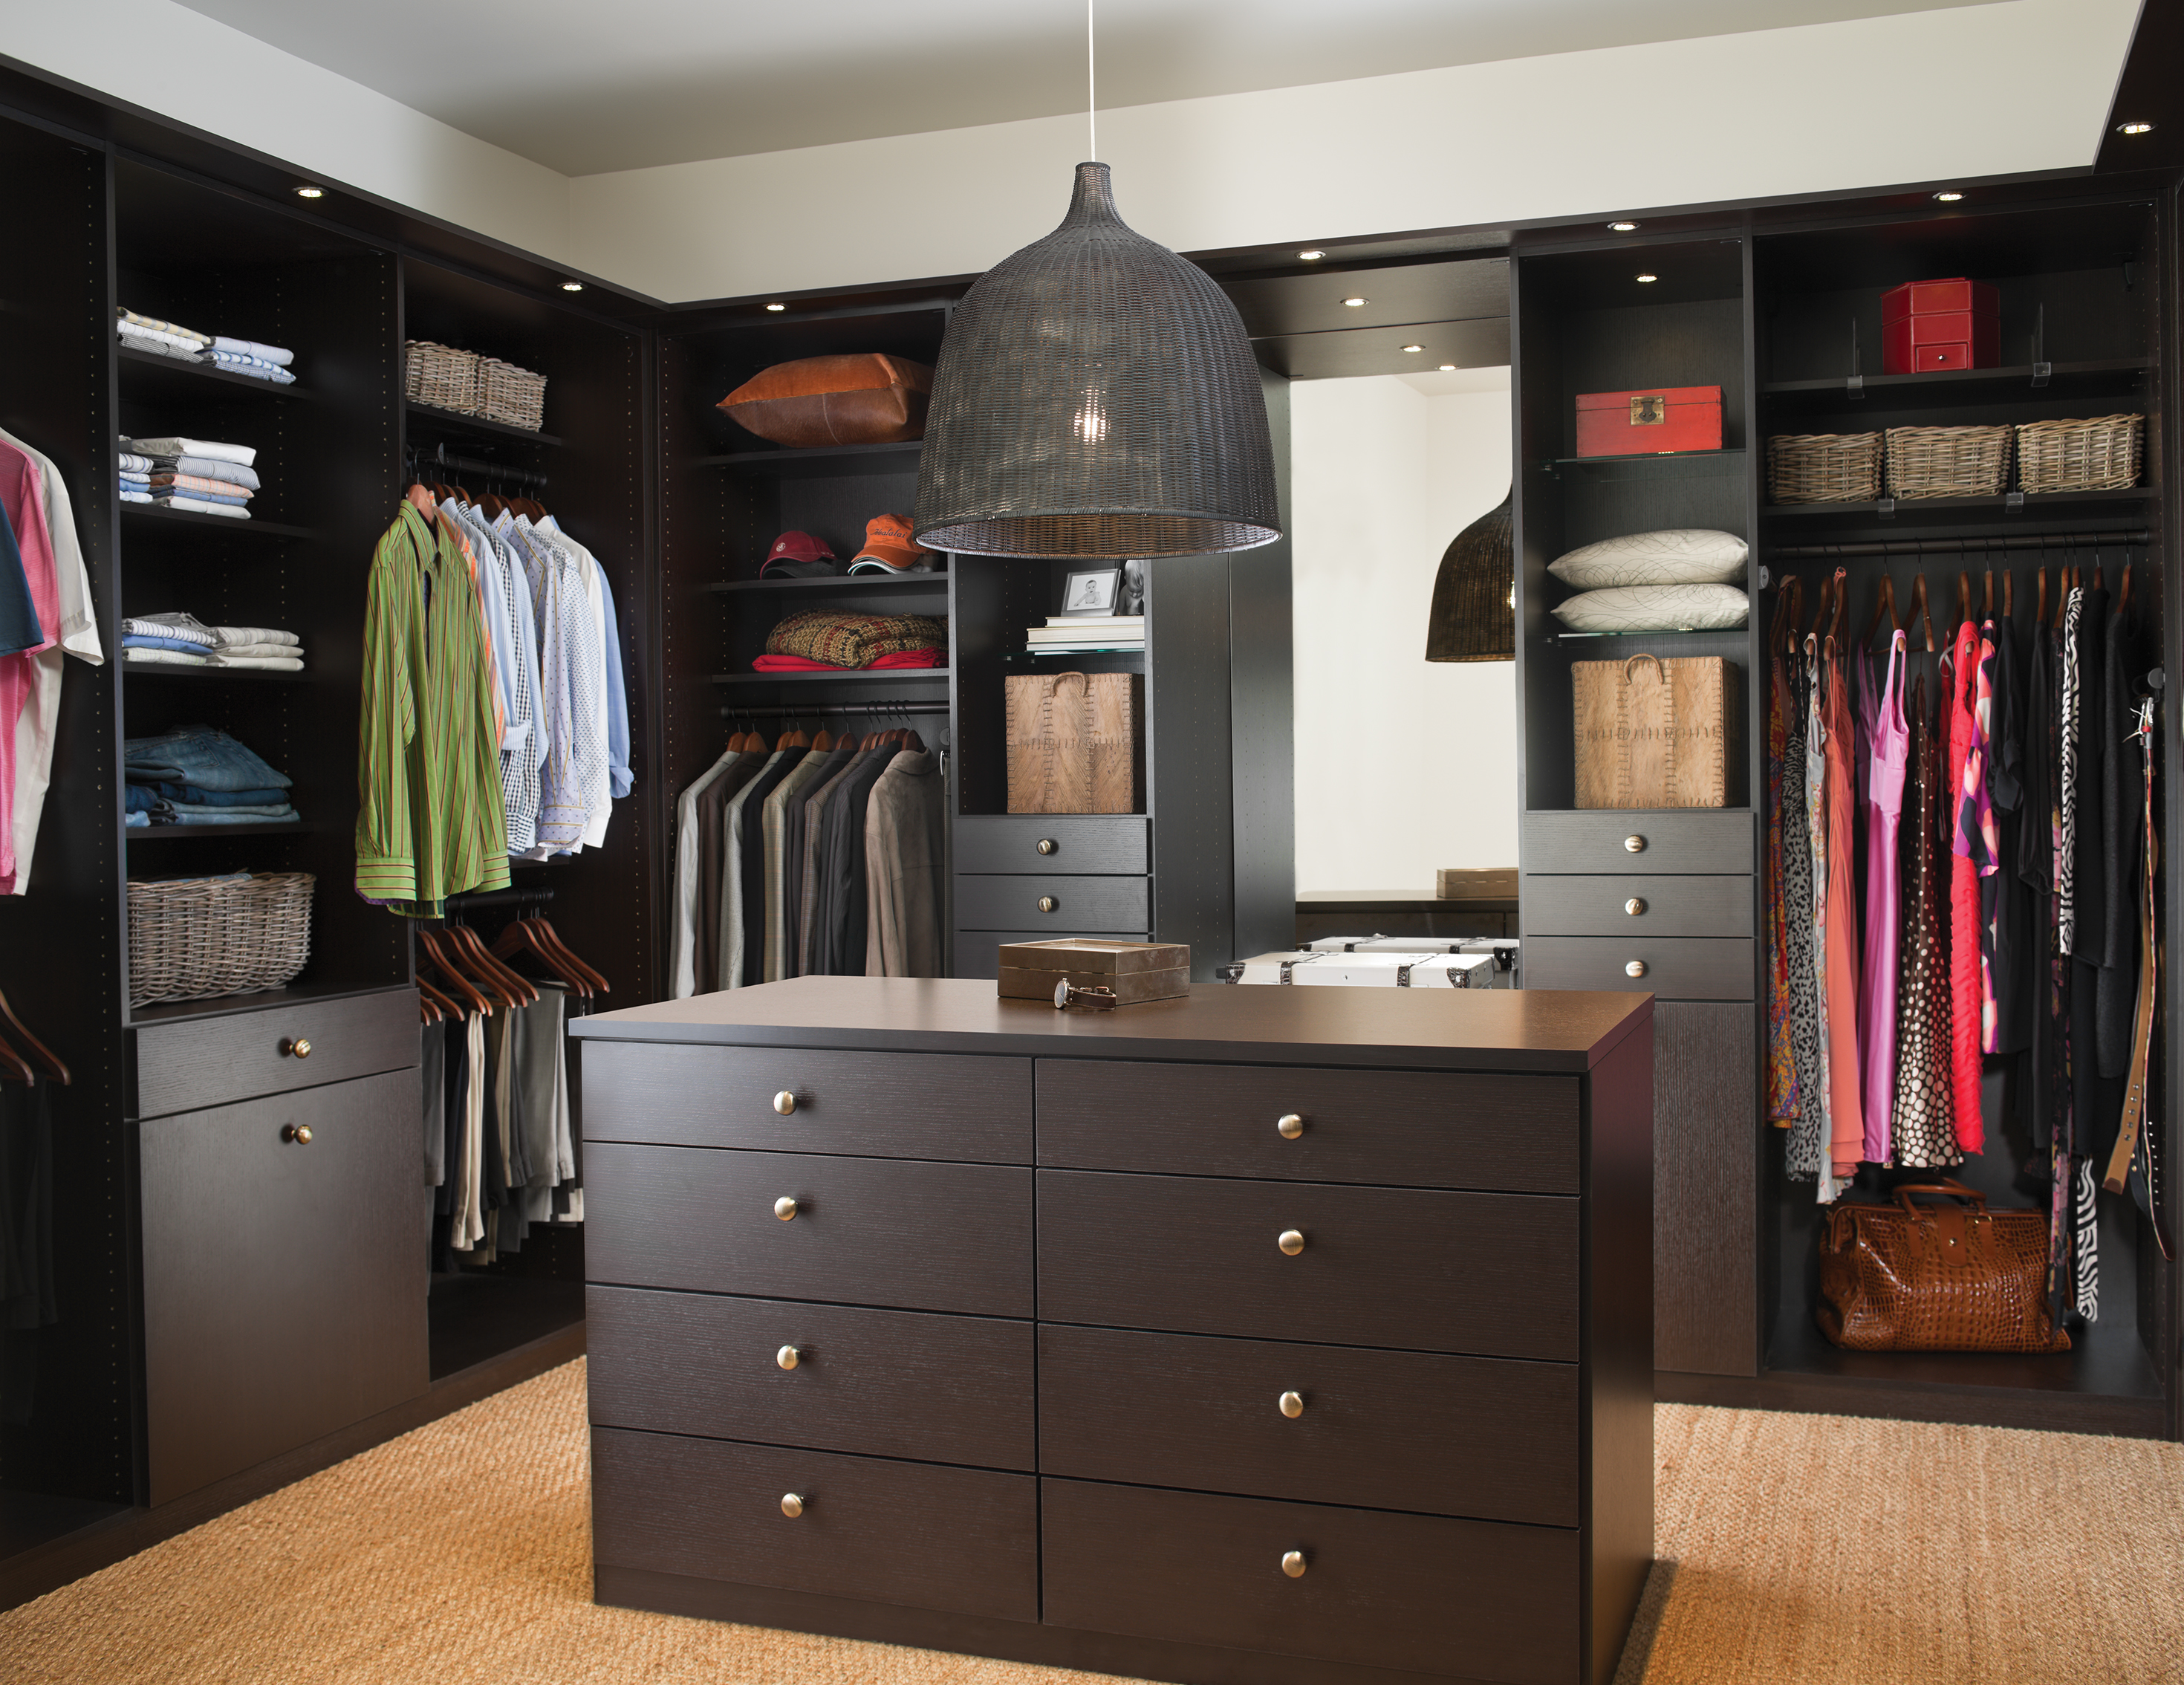 California Closets Los Angeles - Walk in Closet with Custom Cabinetry and LED Lighting